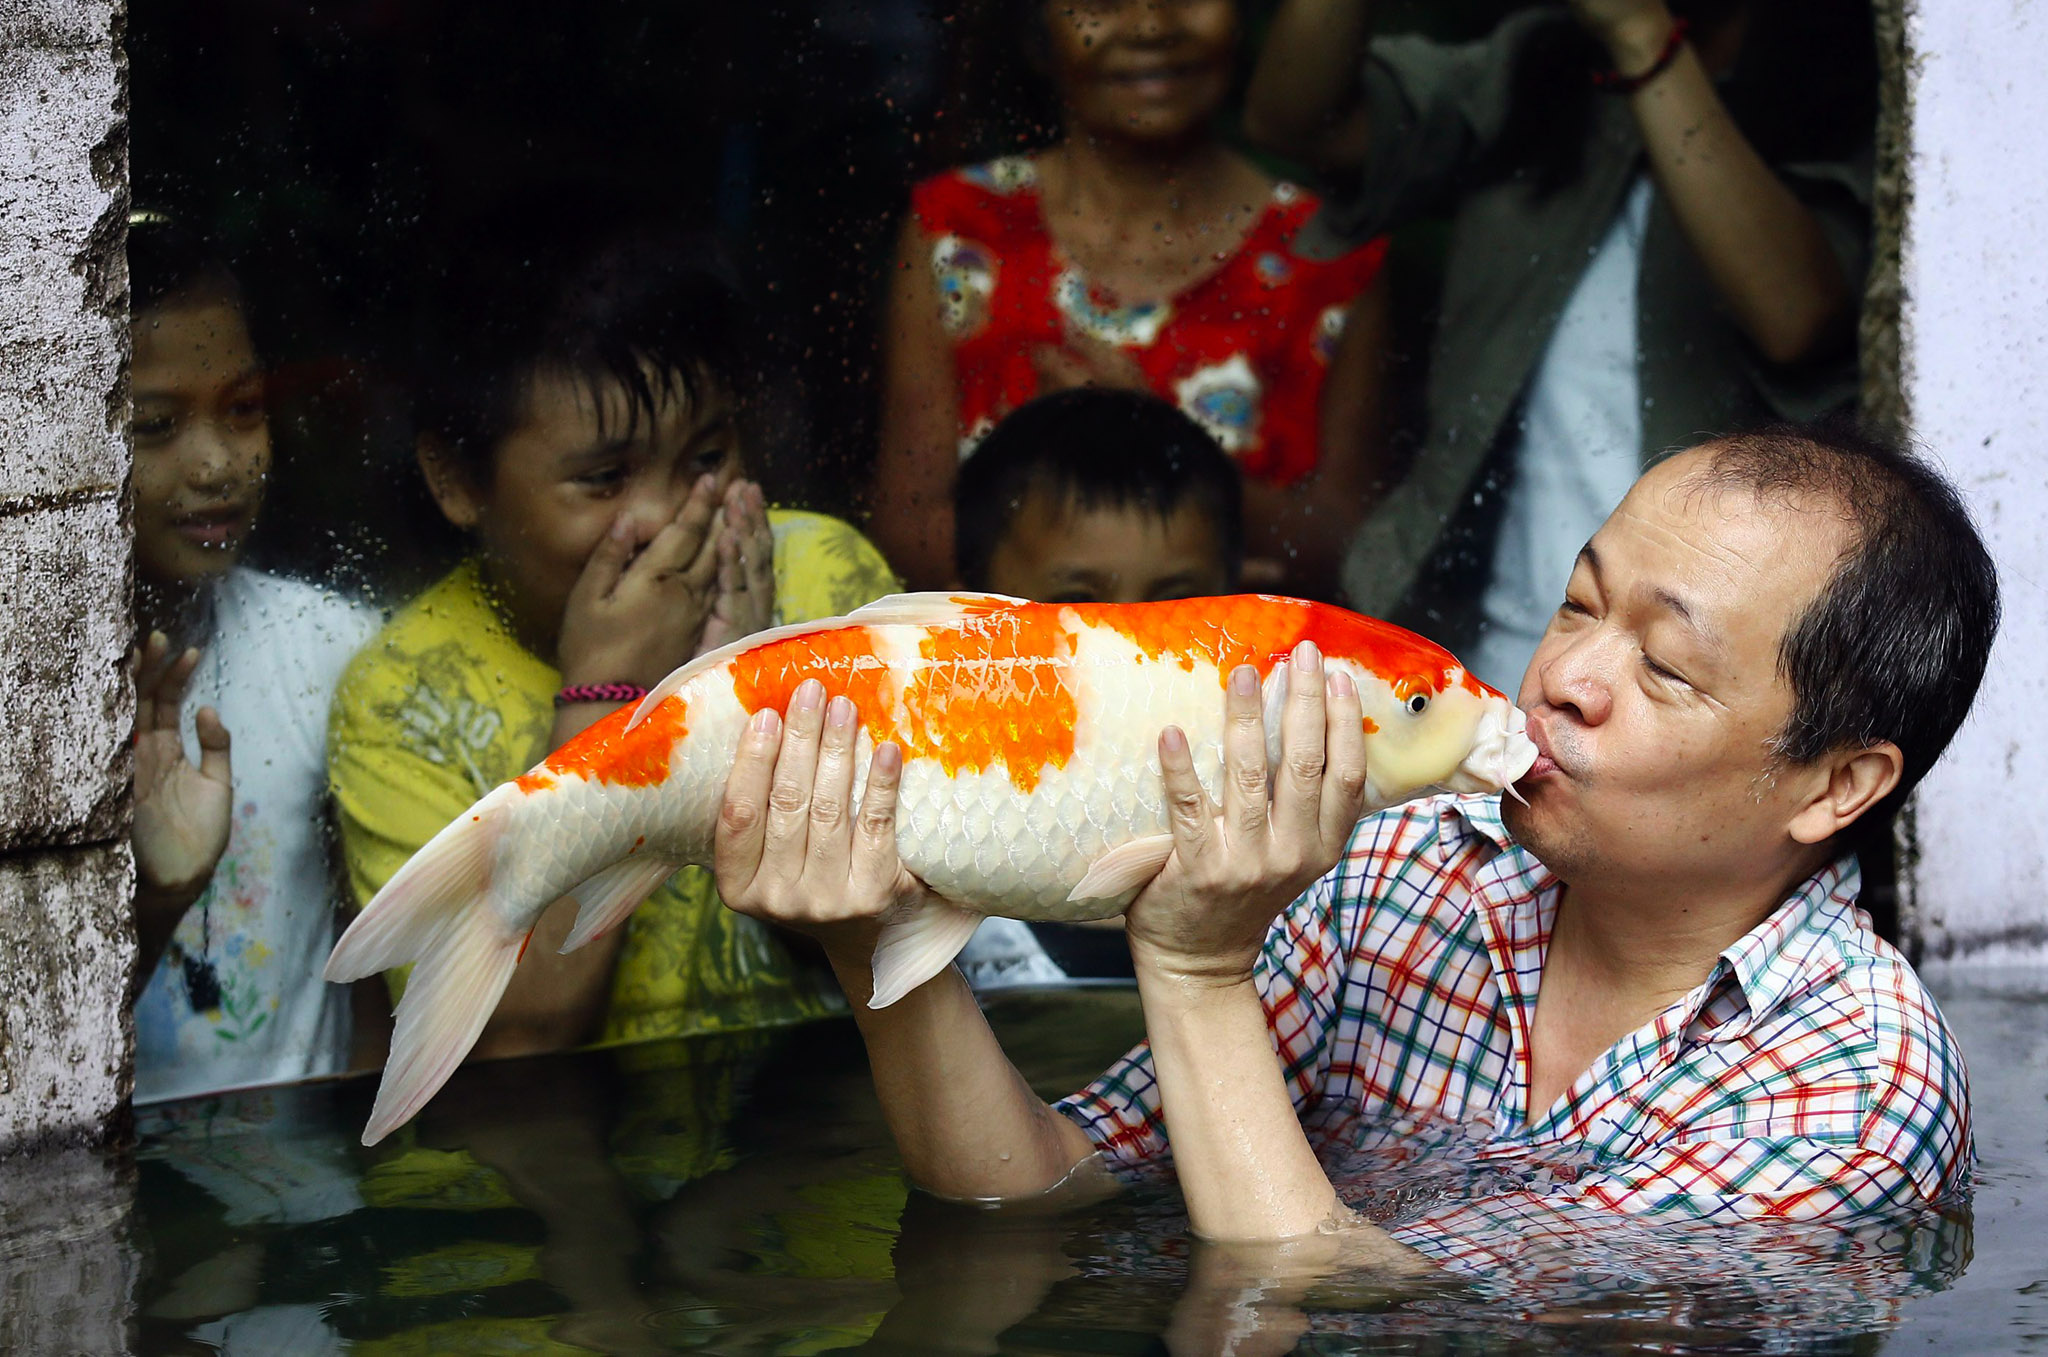 Filipino zoo owner Manny Tangco kisses his Japanese koi carp inside the Malabon Zoo, north of Manila, Philippines. The zoo is one of the largest in the Philippines, borne out of a backyard hobby and passion for animals.